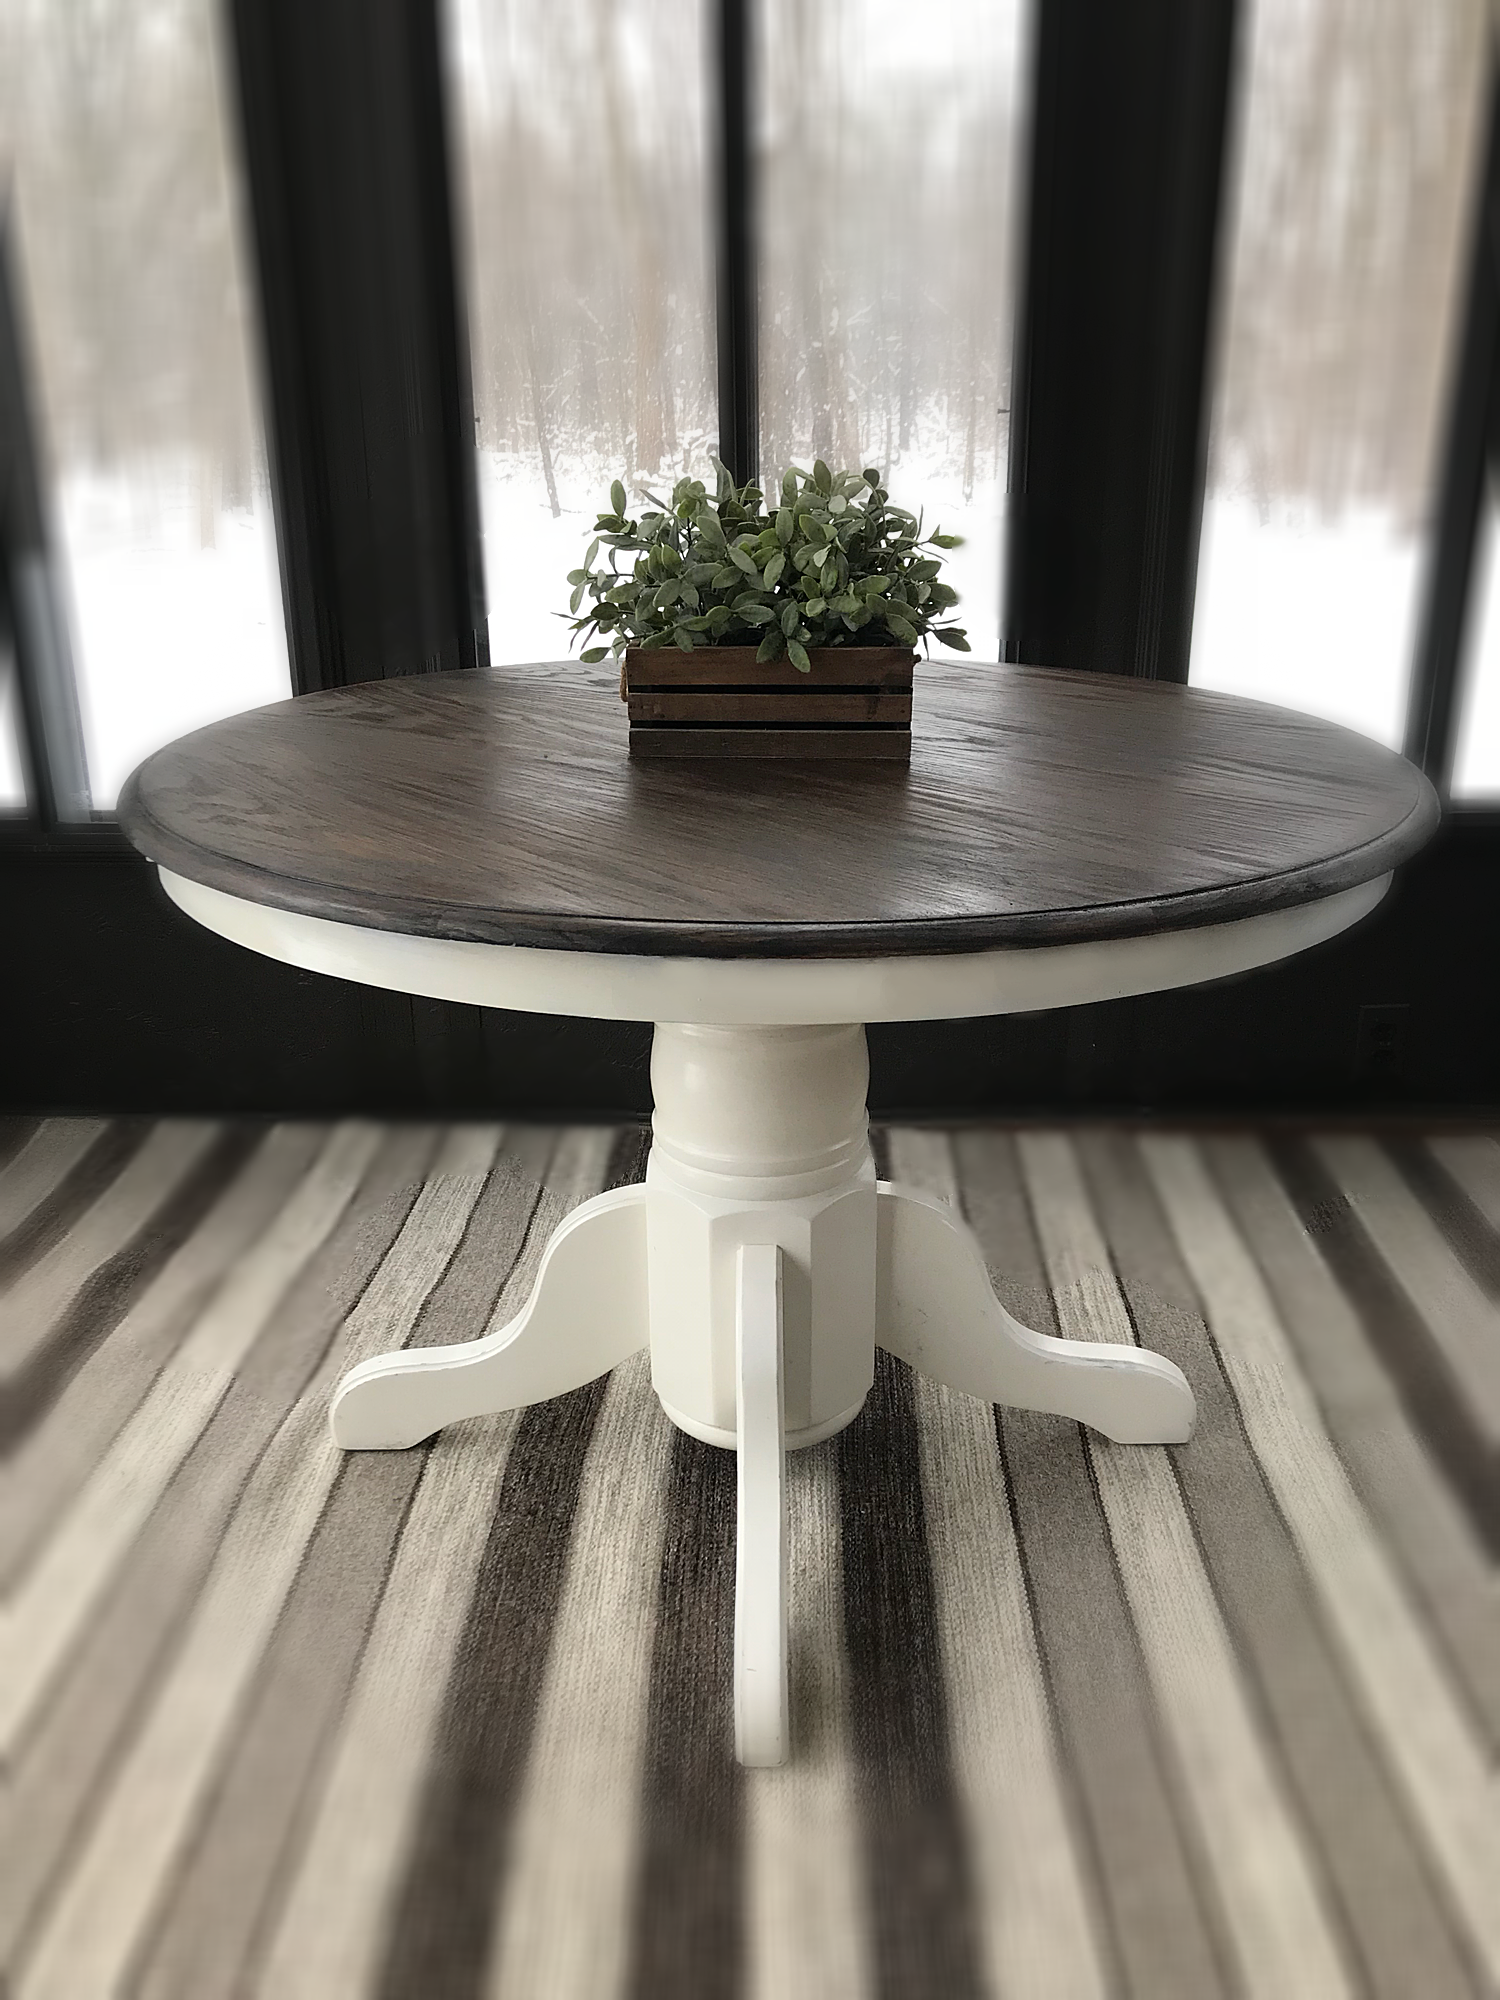 Kitchen Accent Table How Much Does It Cost To Change Cabinets Vintage Wooden Rustic Entryway Farmhouse Country Furniture Console Expandable Round